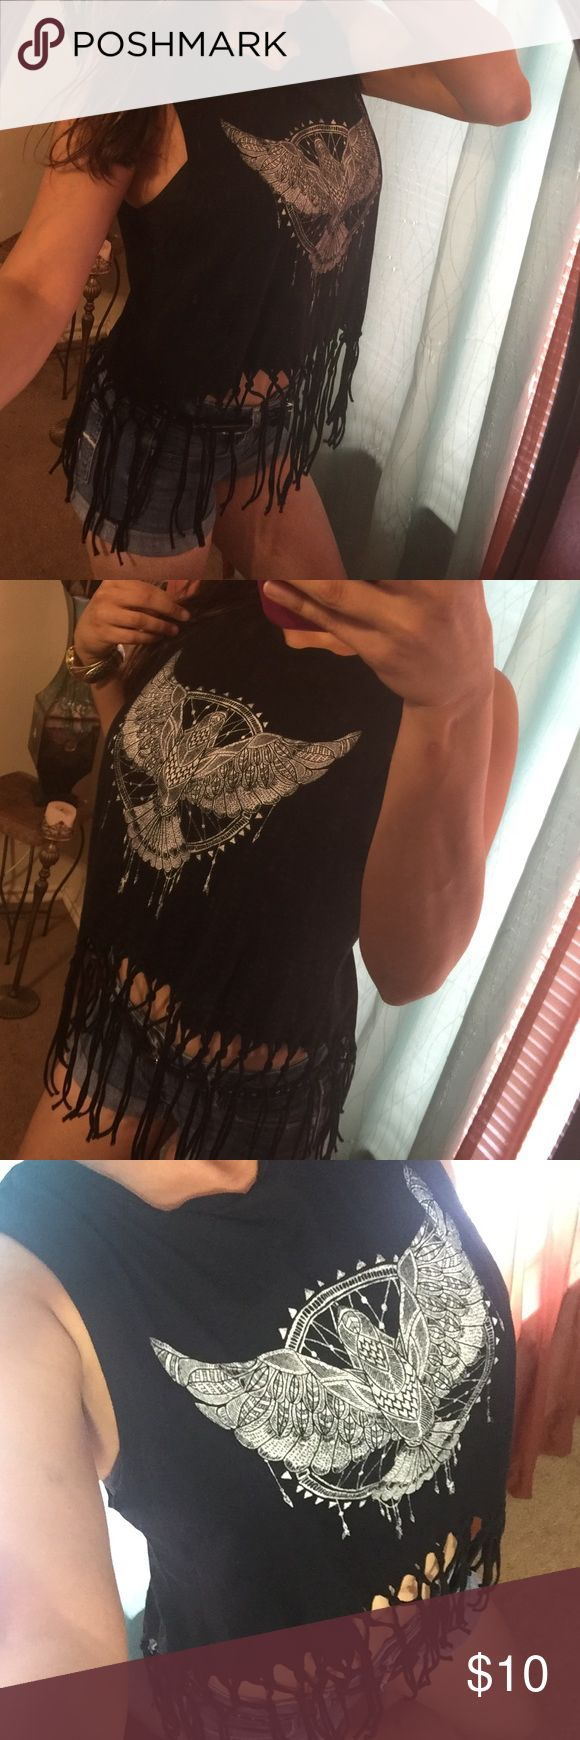 "⛔H&M Black Eagle Dream Catcher Fringe Tank Top New with out tags-100% cotton-BUST:20""- LENGTH:26"" H&M Tops Tank Tops"